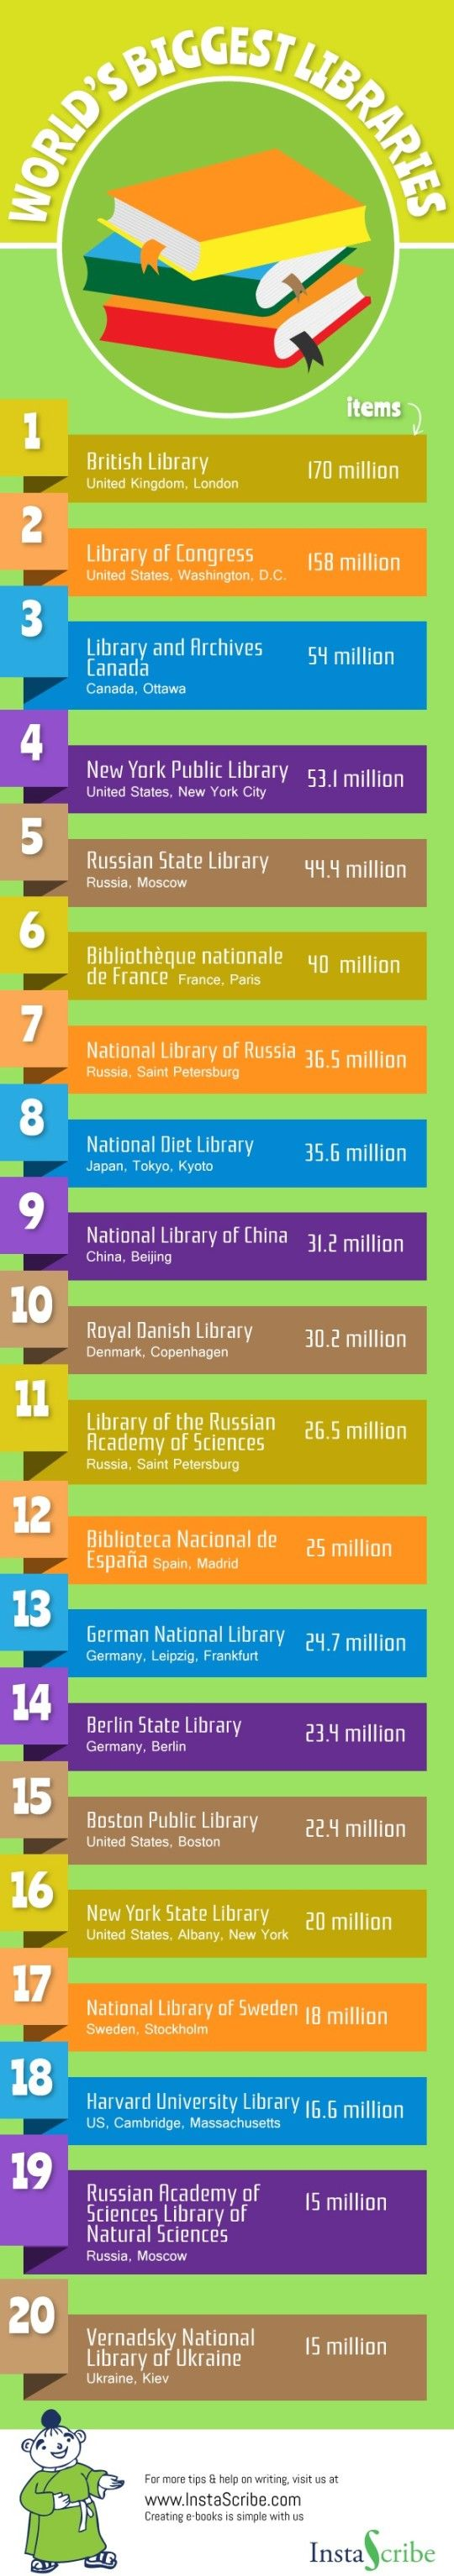 3072 Best Images About Other Libraries Using Pinterest On Pinterest  Good  Books, Book Lovers And Librarian Humor